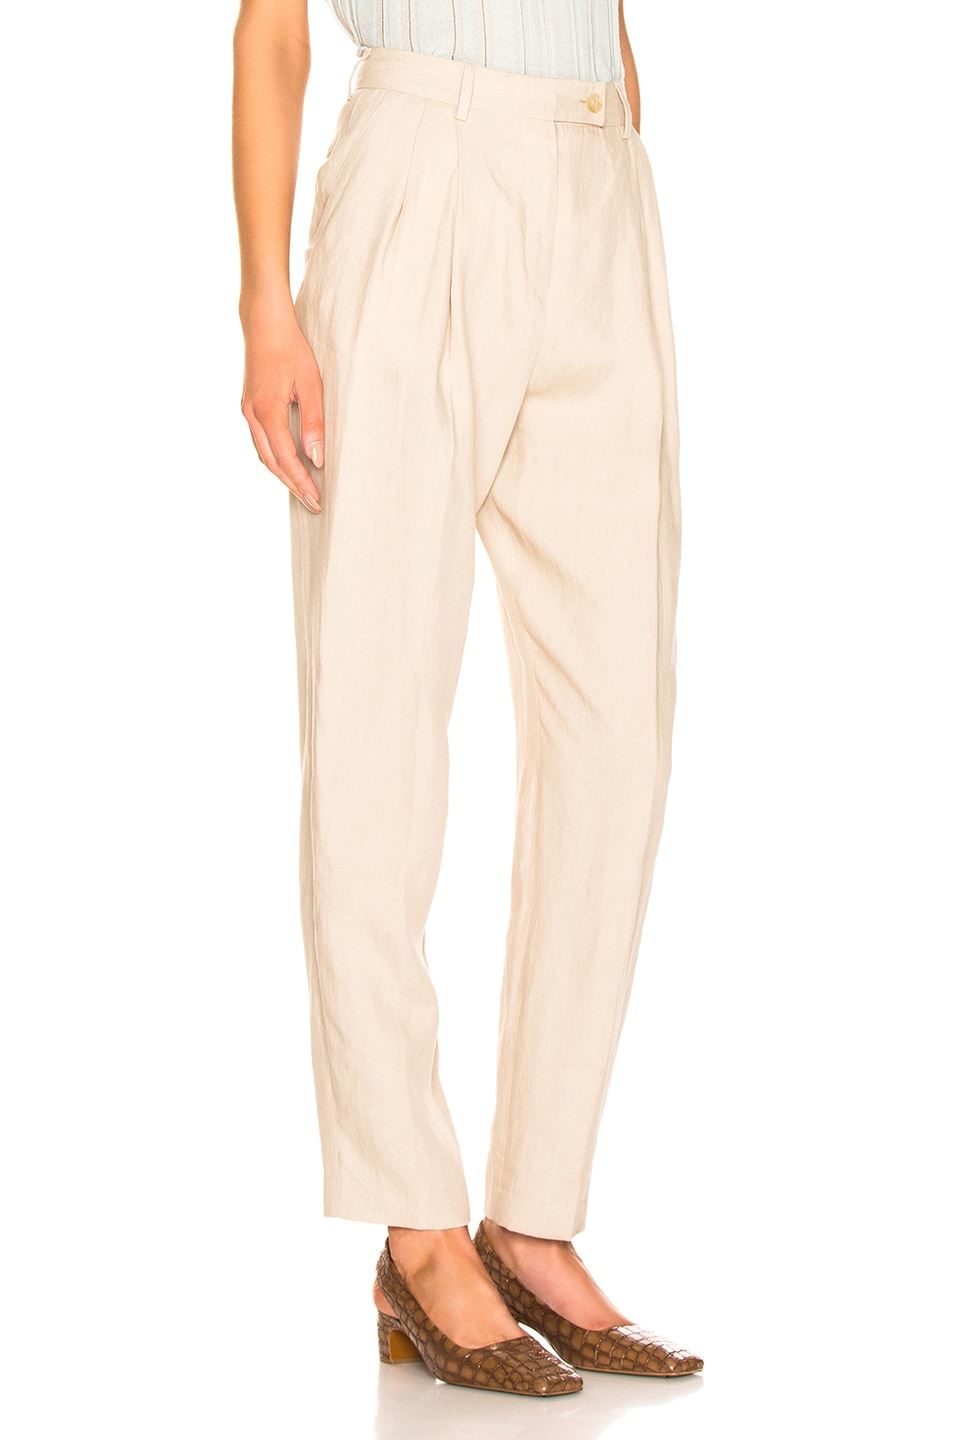 Image 2 of Acne Studios Pati Pant in Sand Beige